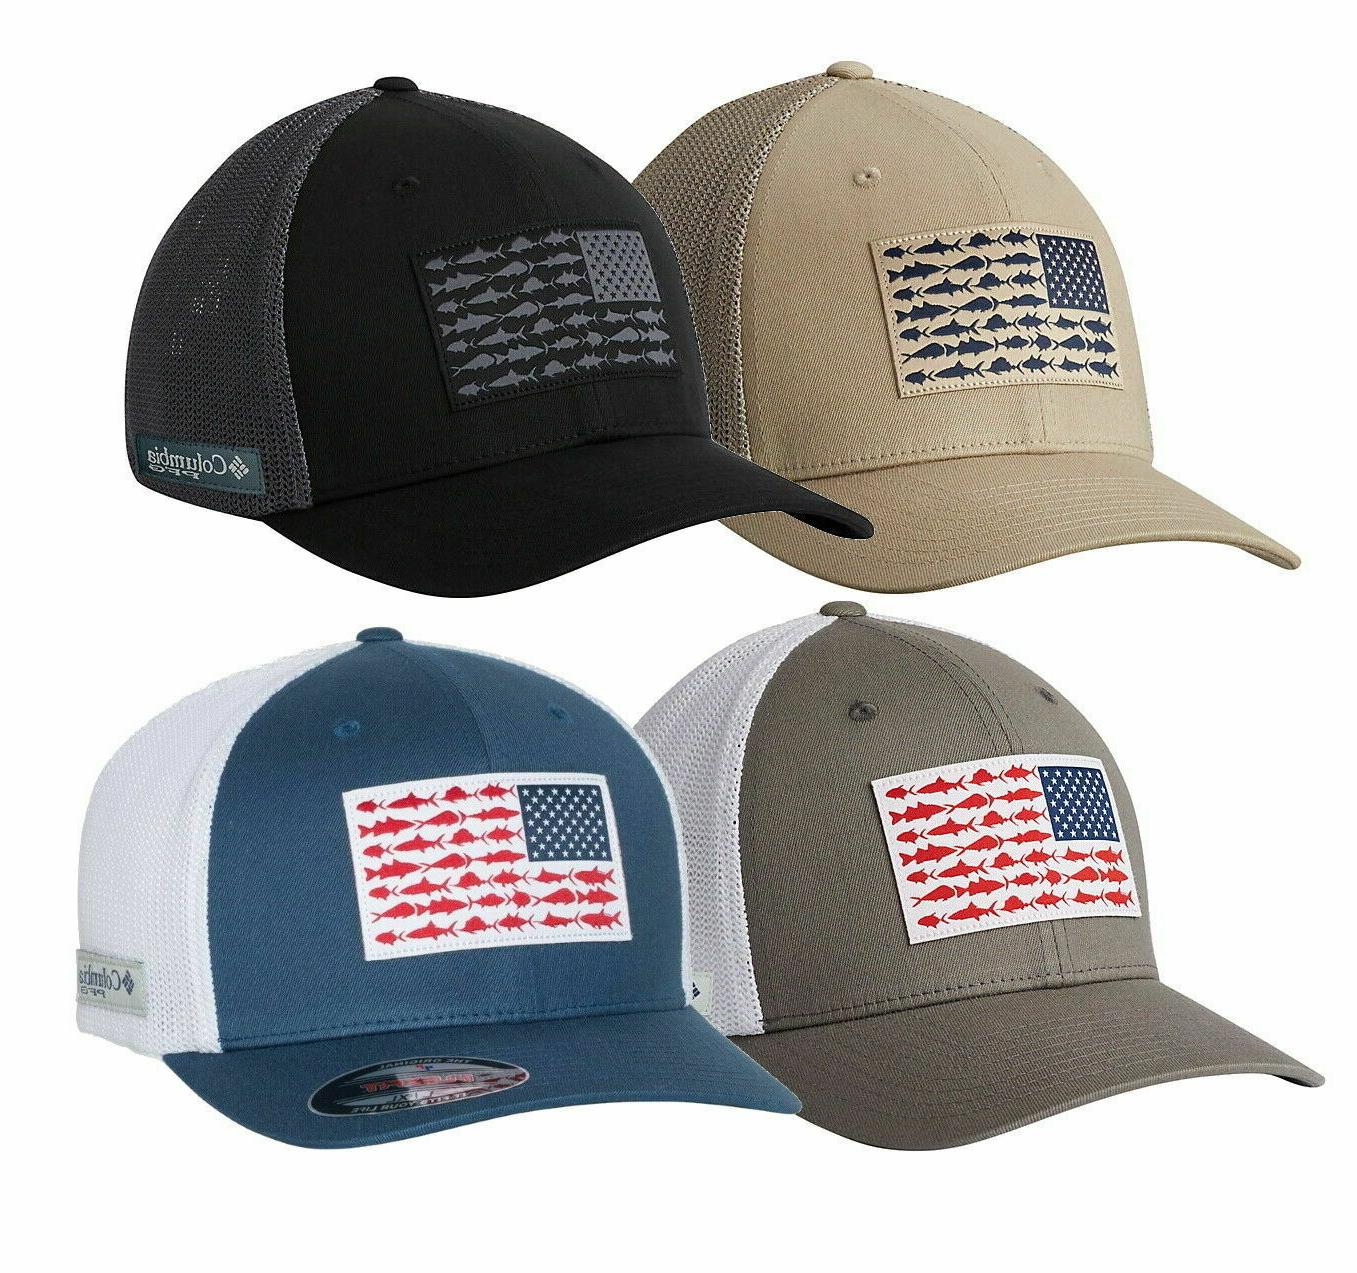 COLUMBIA PFG MESH HAT, FLEXFIT CAP, FITTED, Size S/M, L/XL,